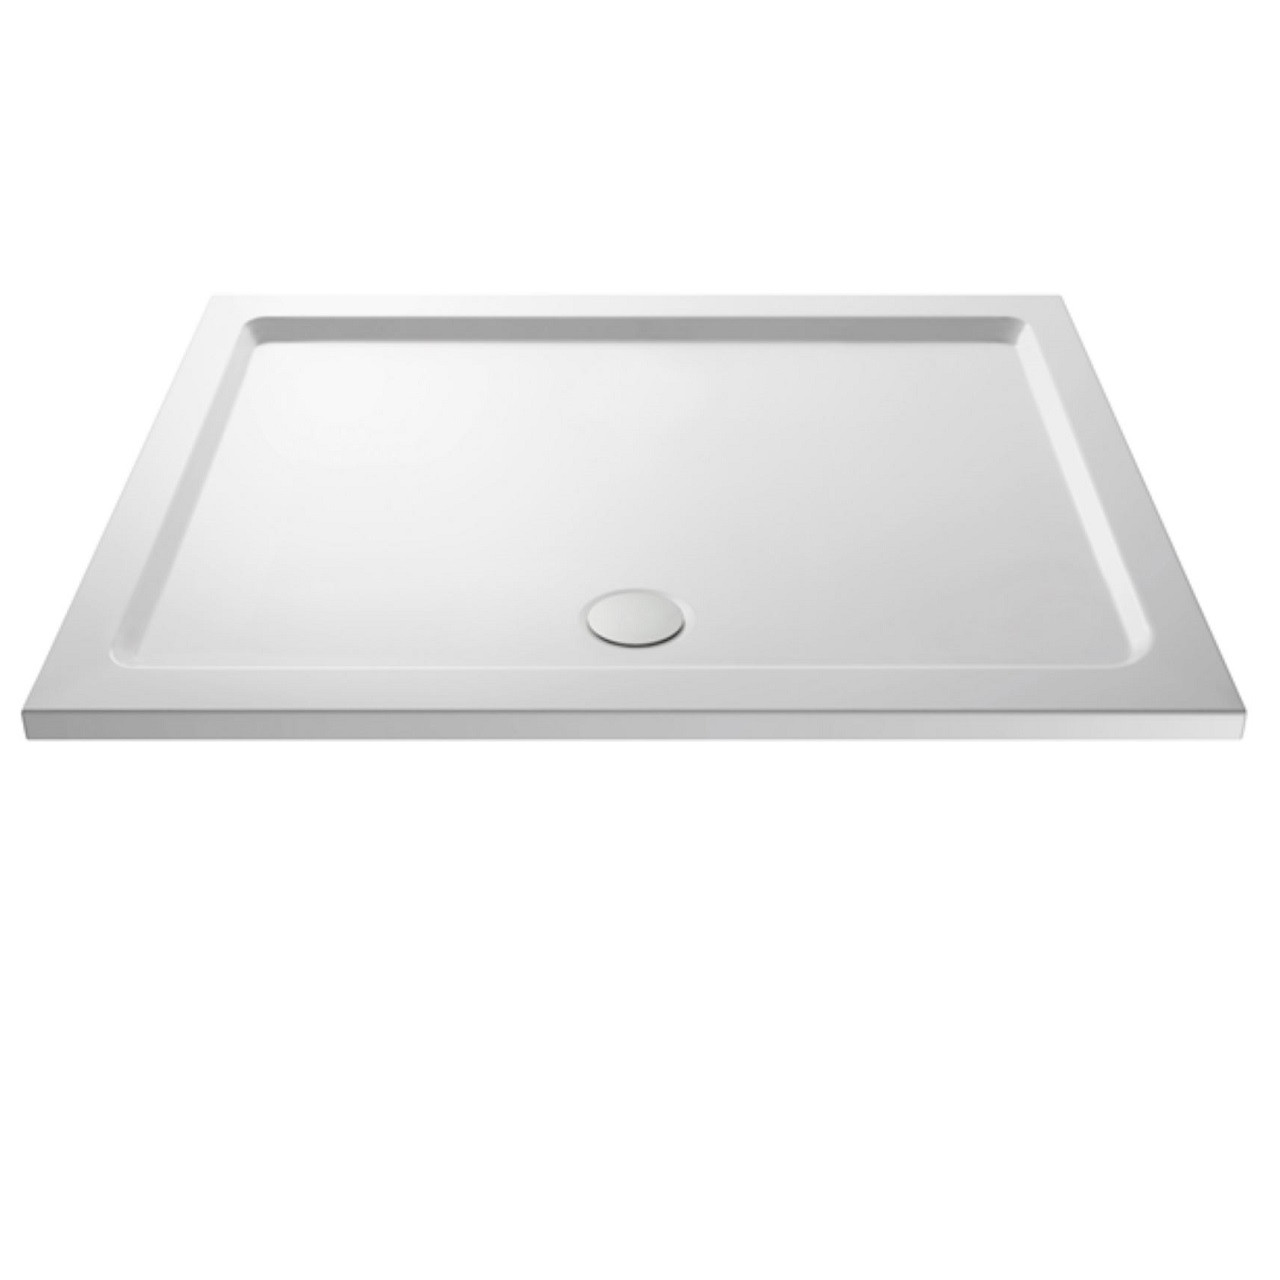 Premier White Rectangular Shower Tray 1400mm x 760mm - NTP032